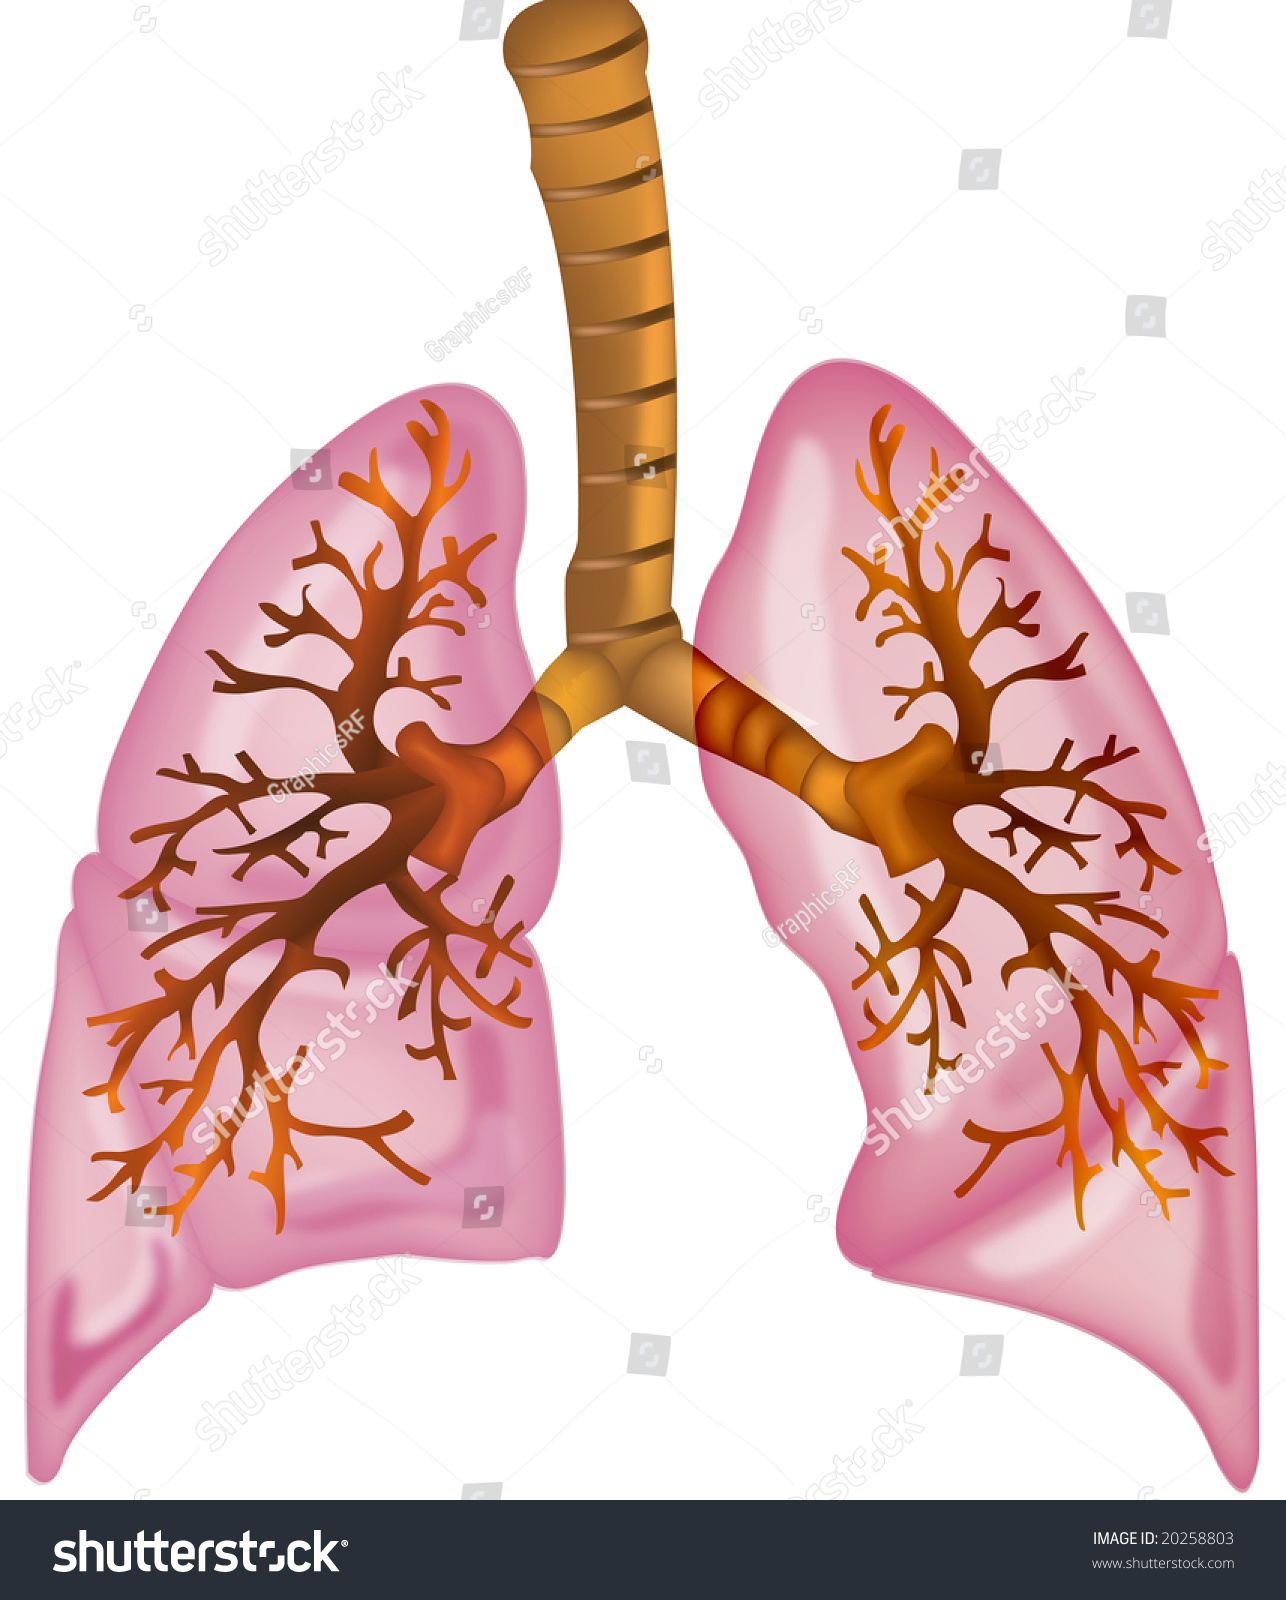 Human Lungs High Detailed Illustration - 20258803 ...